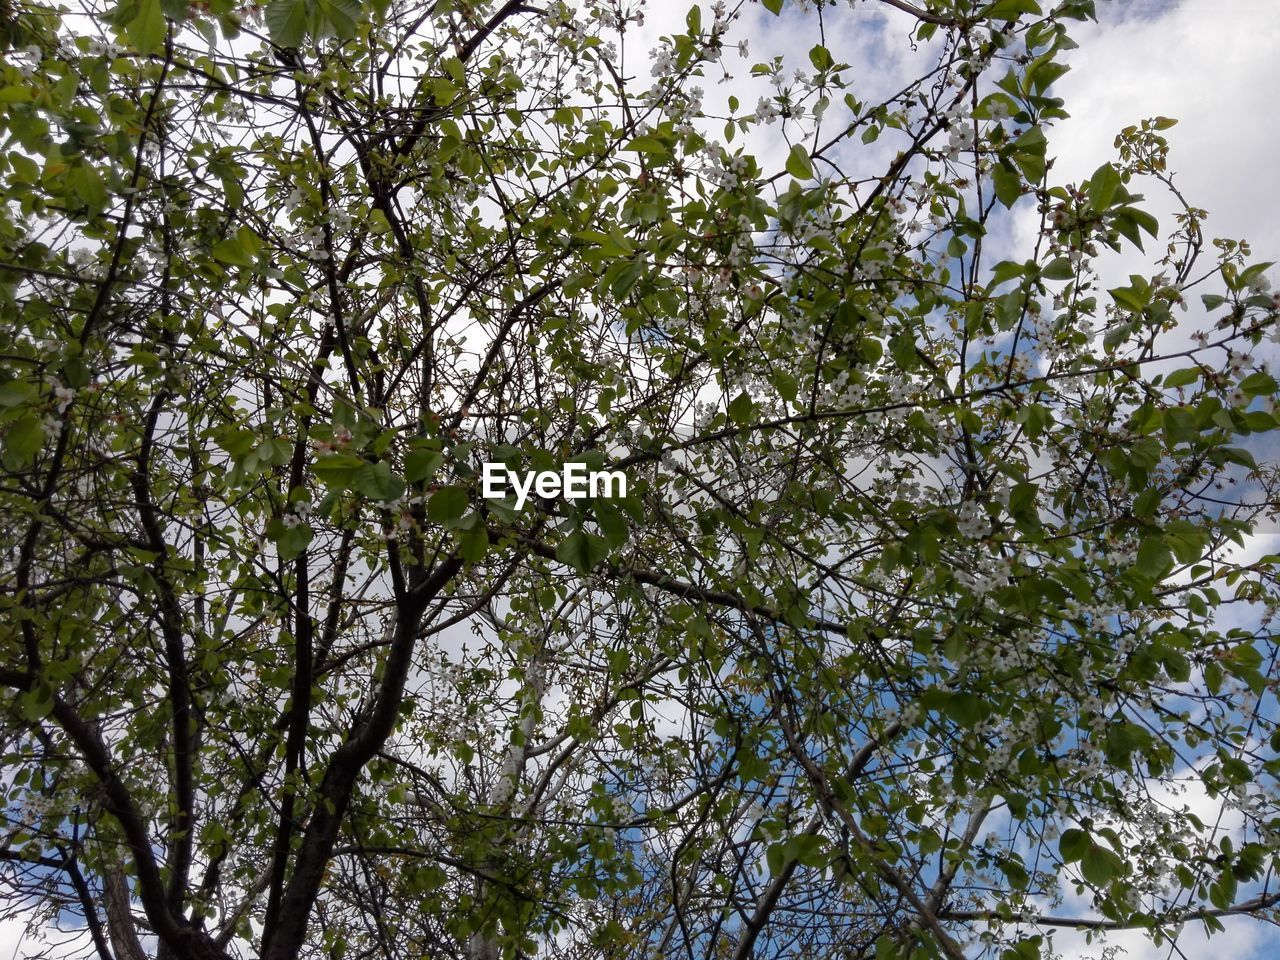 tree, nature, low angle view, flower, branch, growth, beauty in nature, freshness, blossom, fragility, springtime, no people, outdoors, day, backgrounds, sky